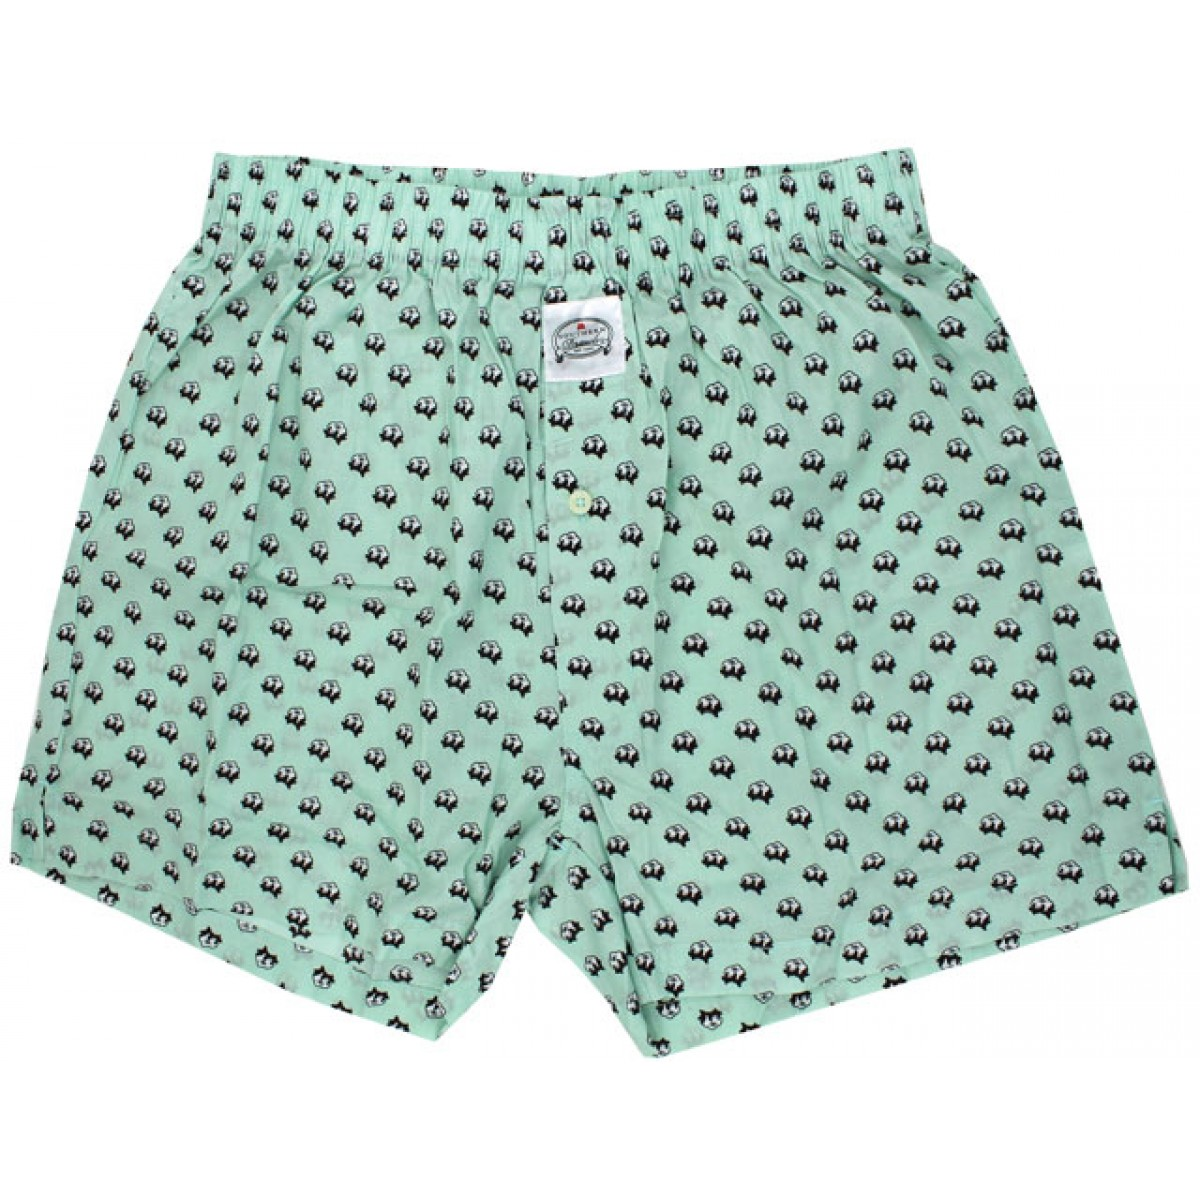 Mint Green Cotton Boll Southern Drawls